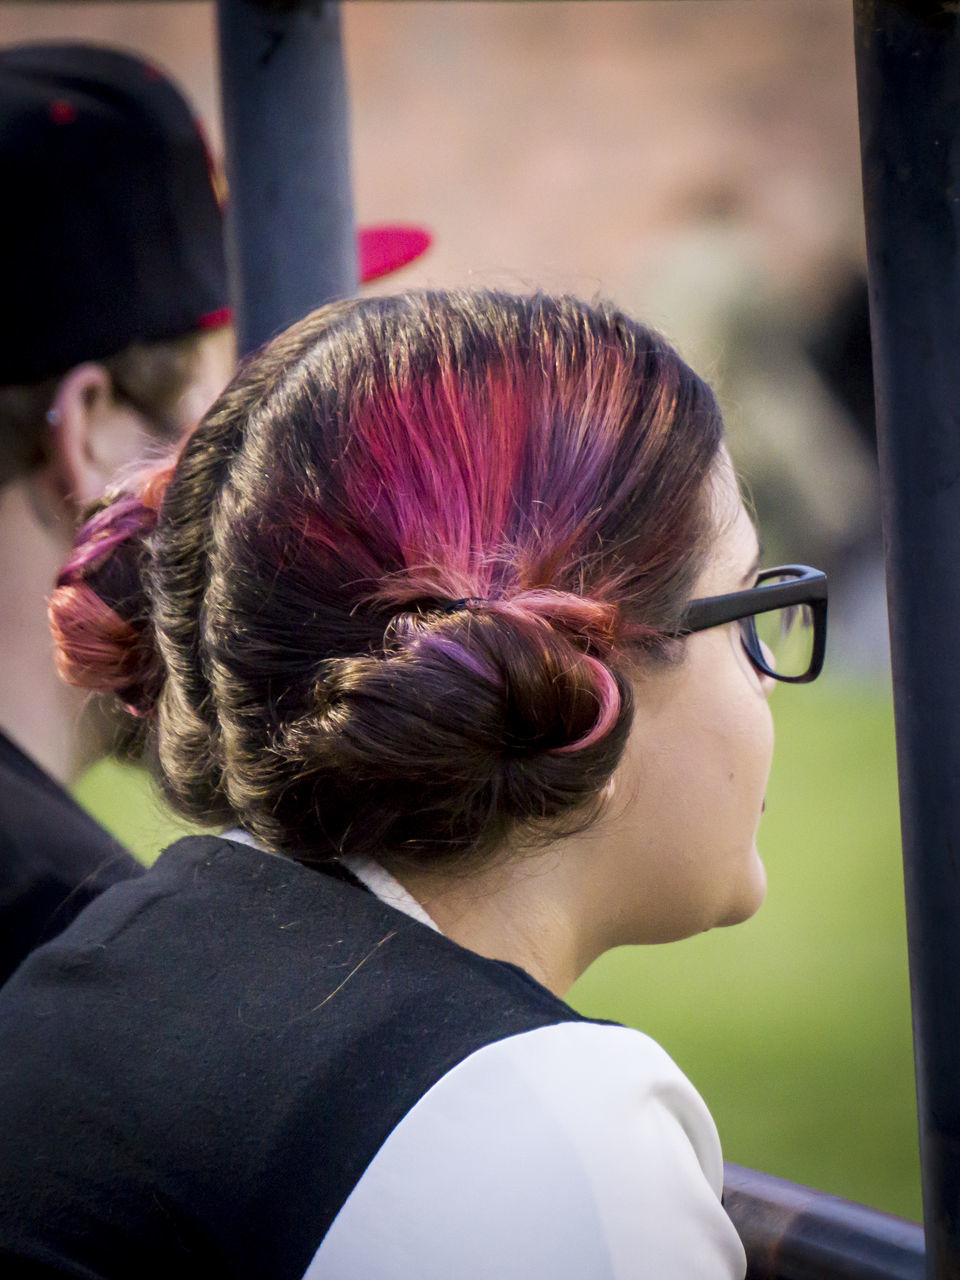 rear view, hair bun, real people, headshot, eyeglasses, one person, outdoors, day, close-up, young adult